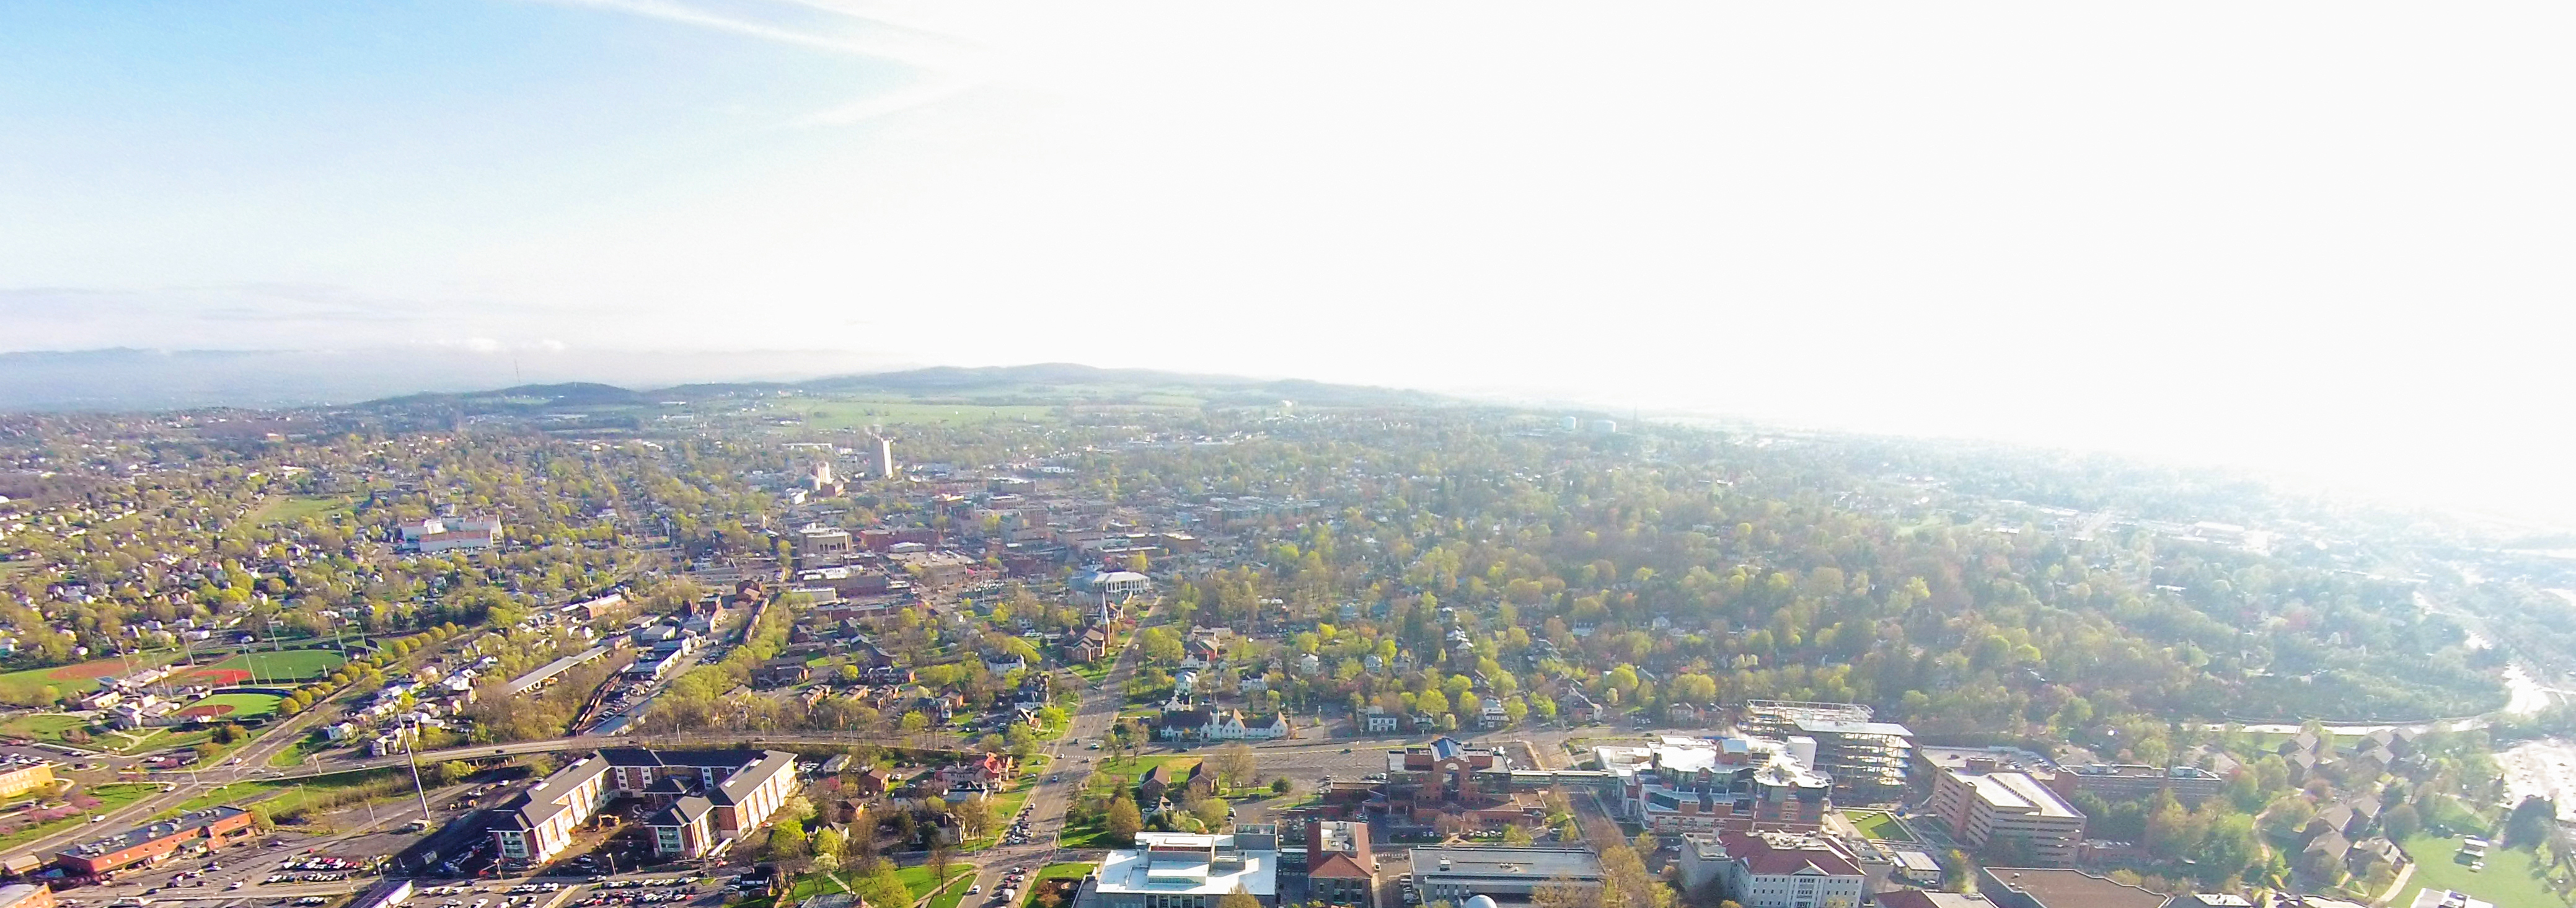 Aerial Photo Showing Downtown and Harrisonburg